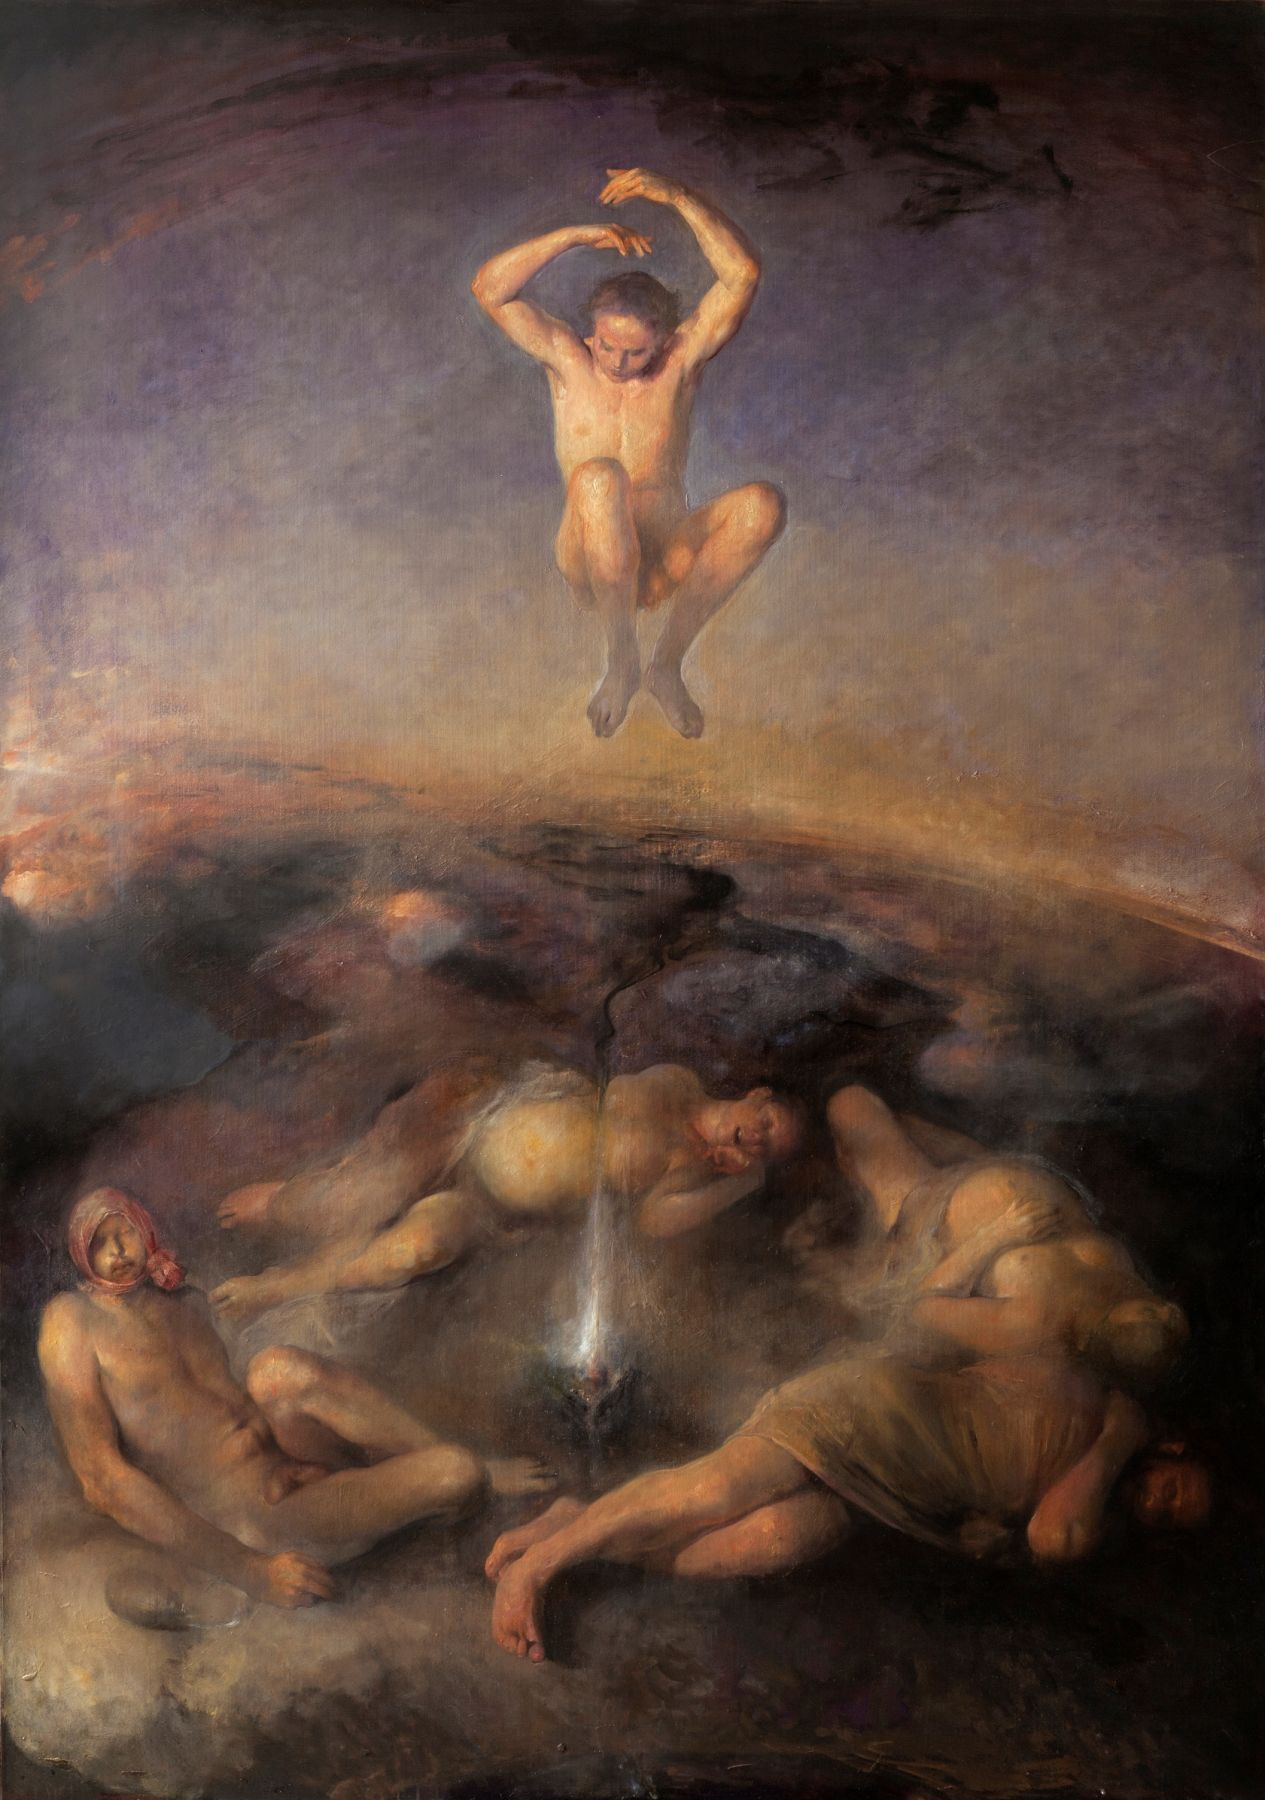 odd nerdrum, Nightjumper, oil on canvas, 81 1/2 x 114 1/2 inches